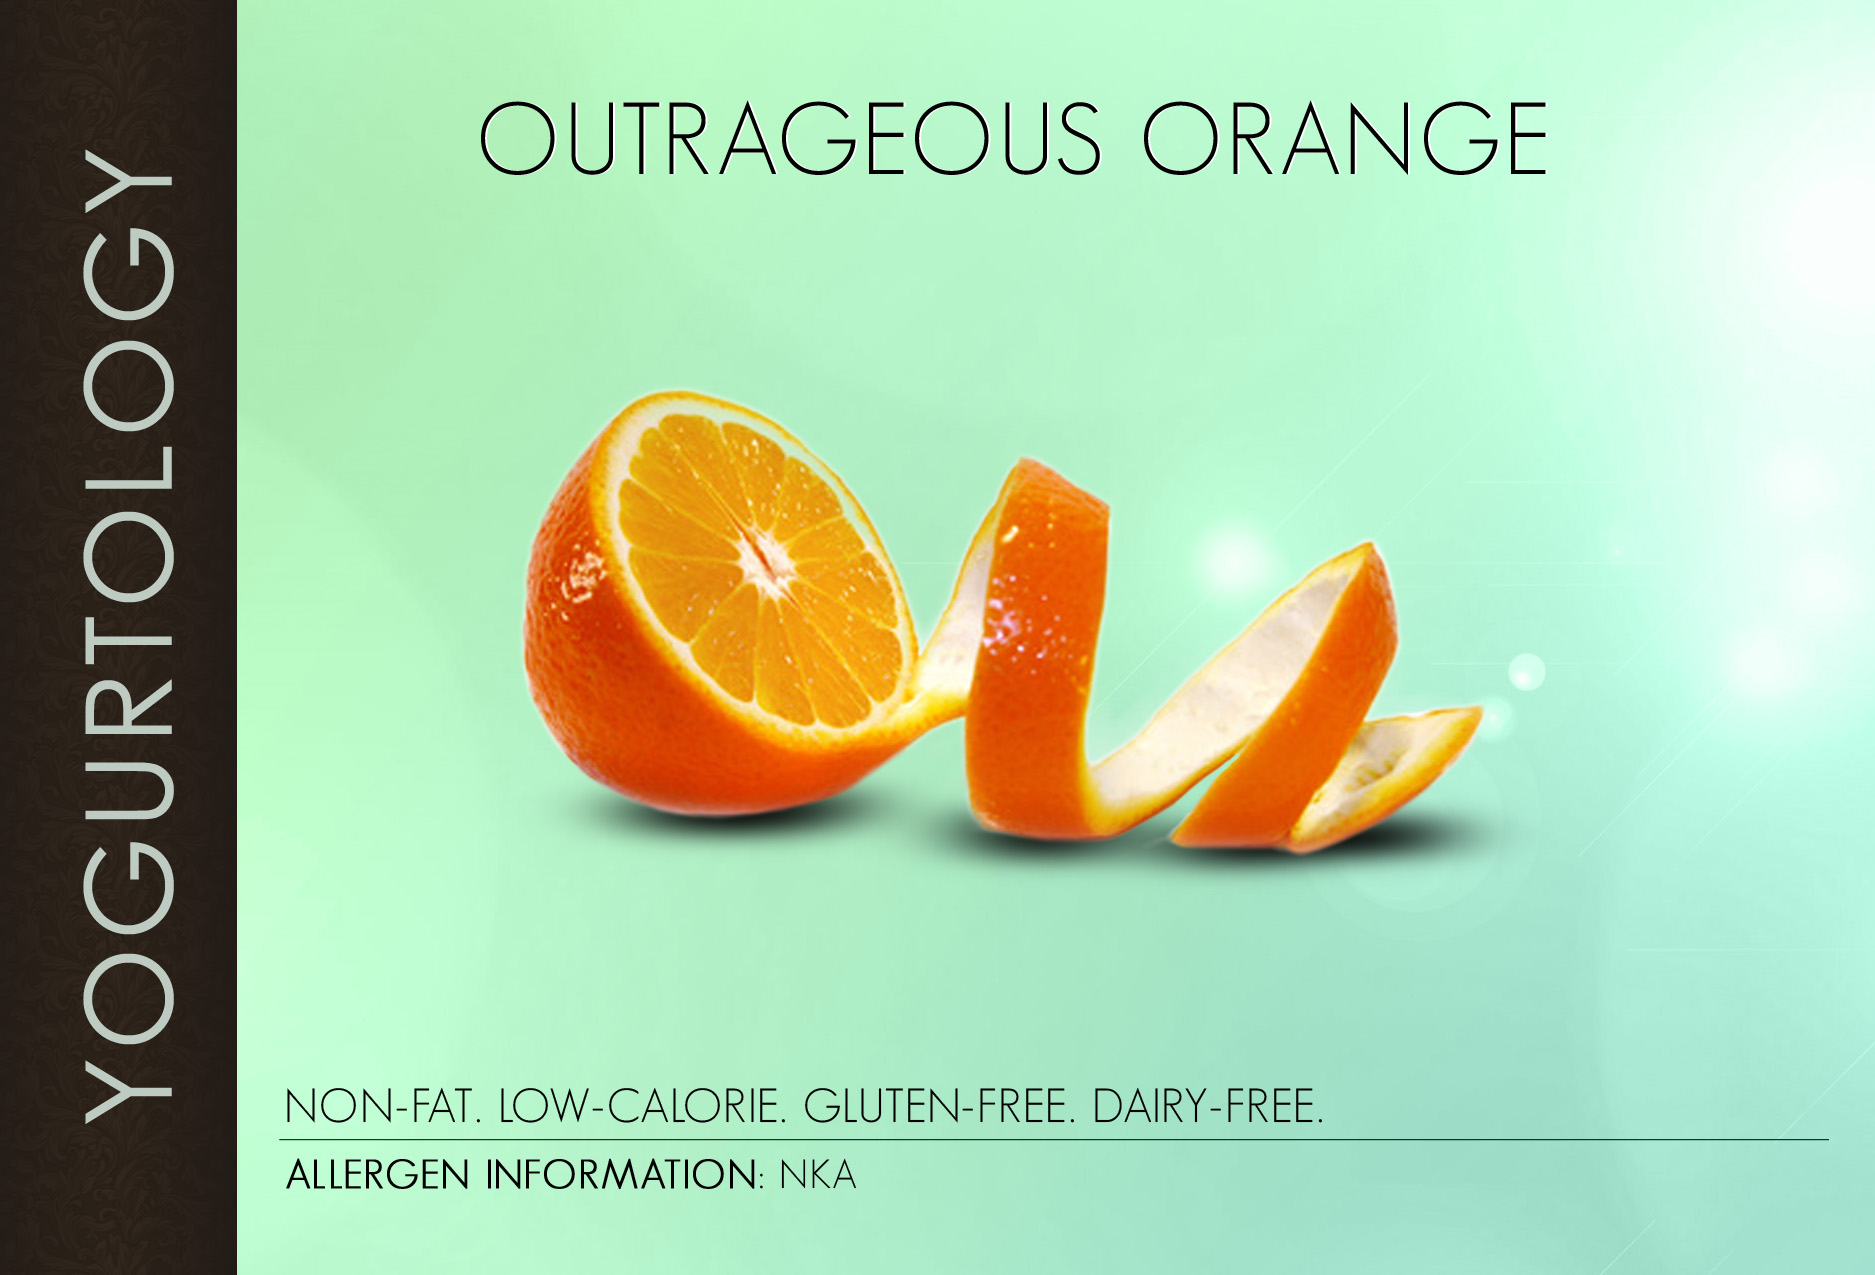 Outrageous Orange